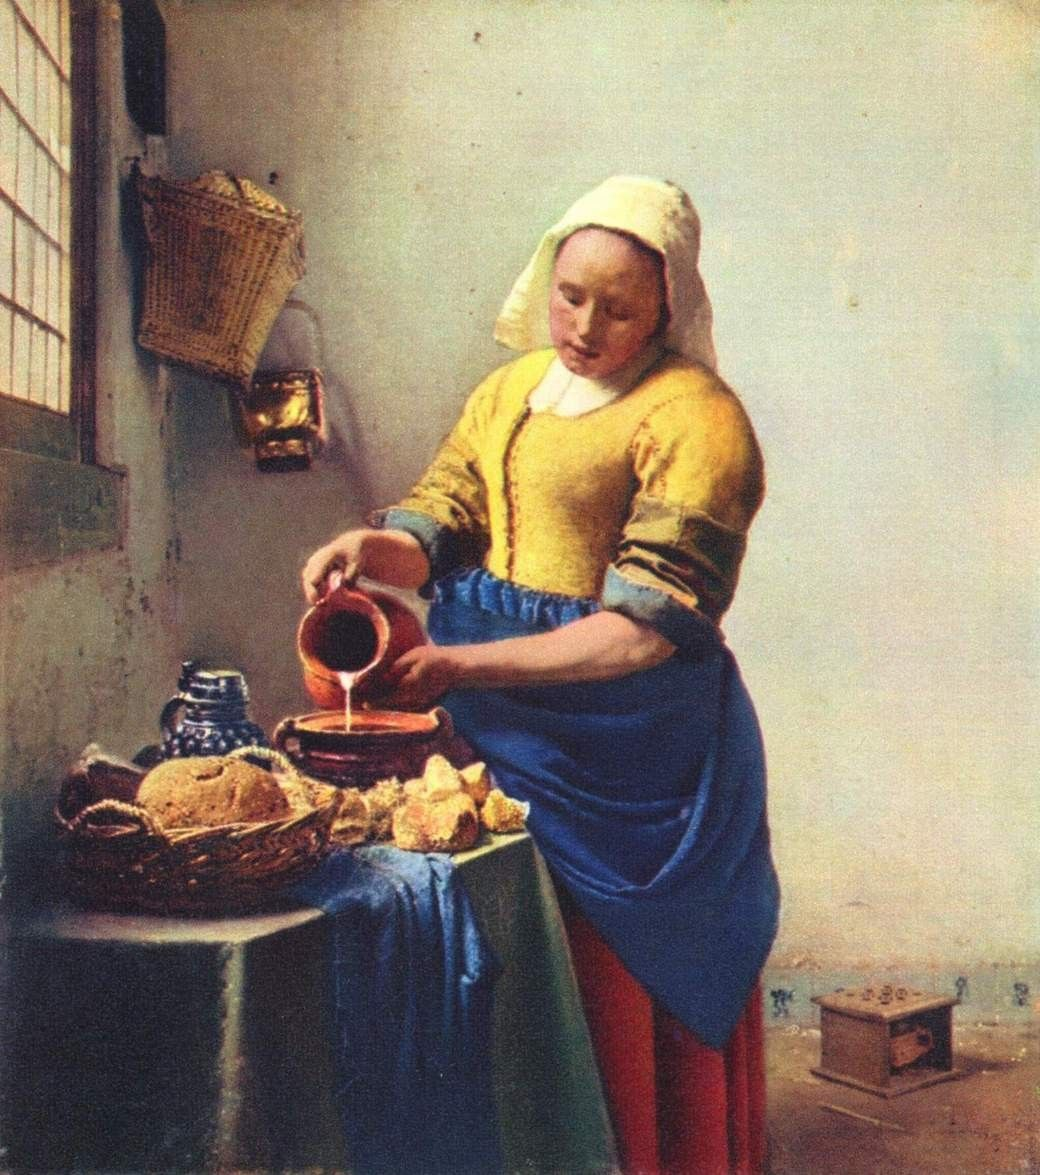 vermeer paintings | Johannes Vermeer Paintings - Johannes Vermeer ...